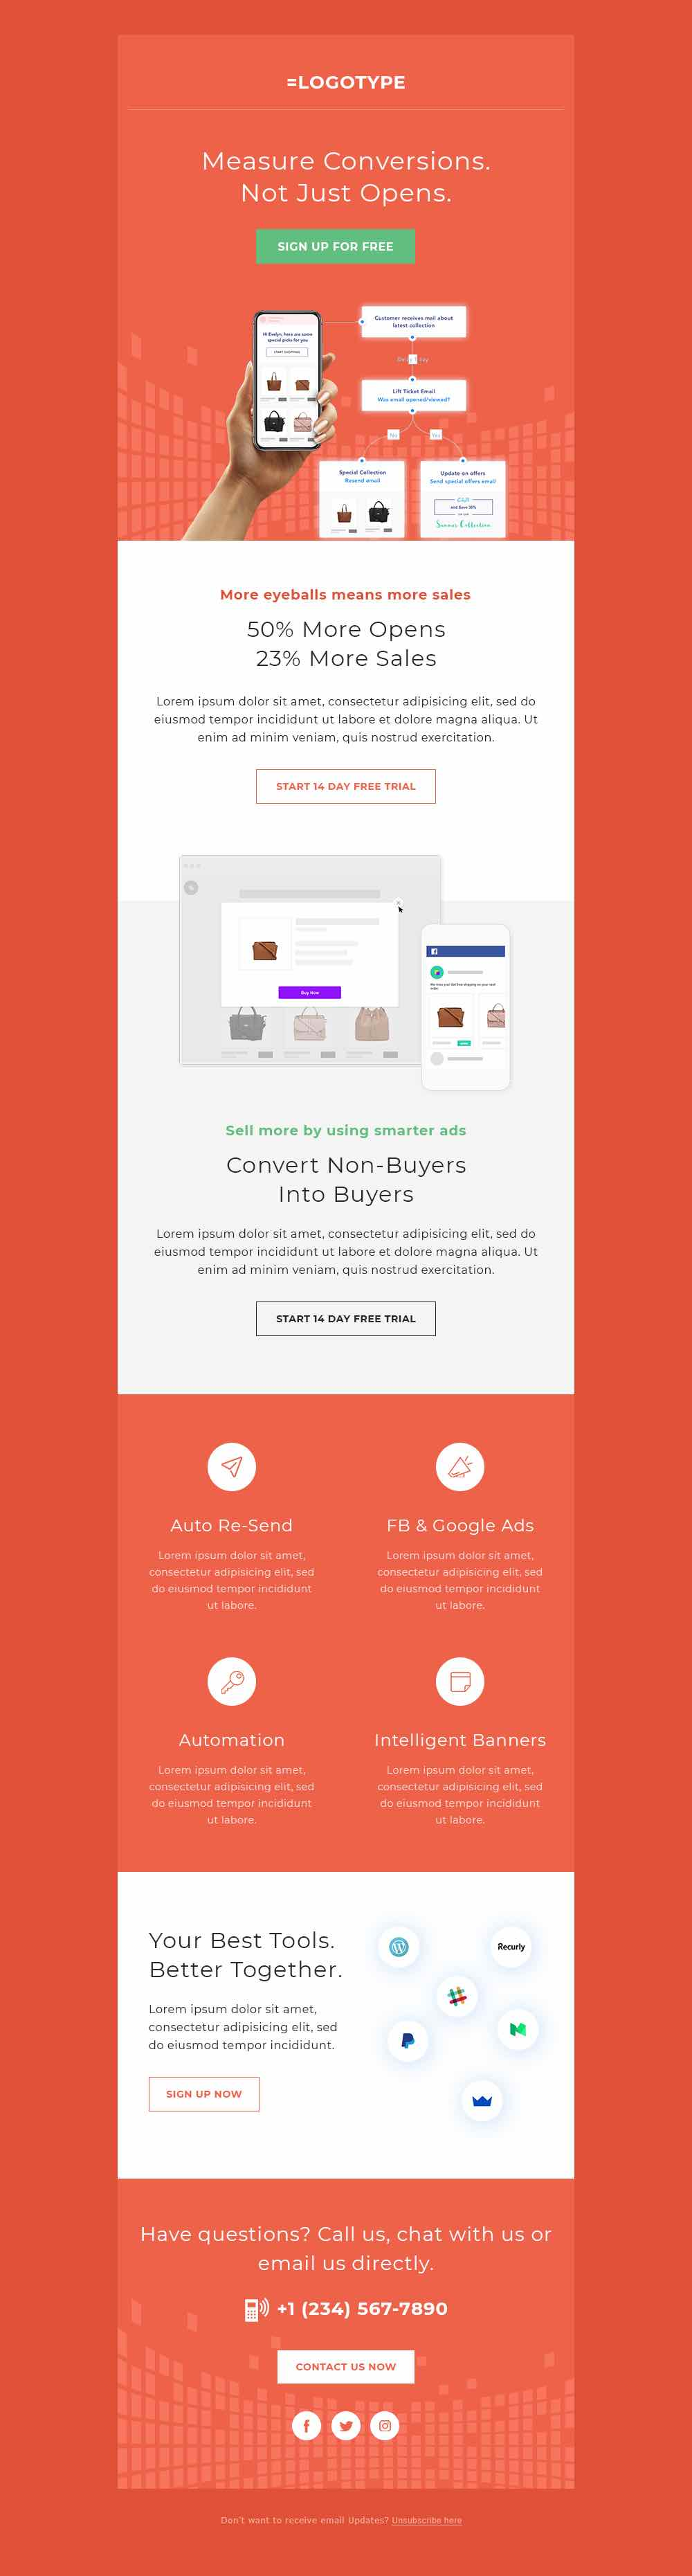 20 Free Html Email Templates Sendx